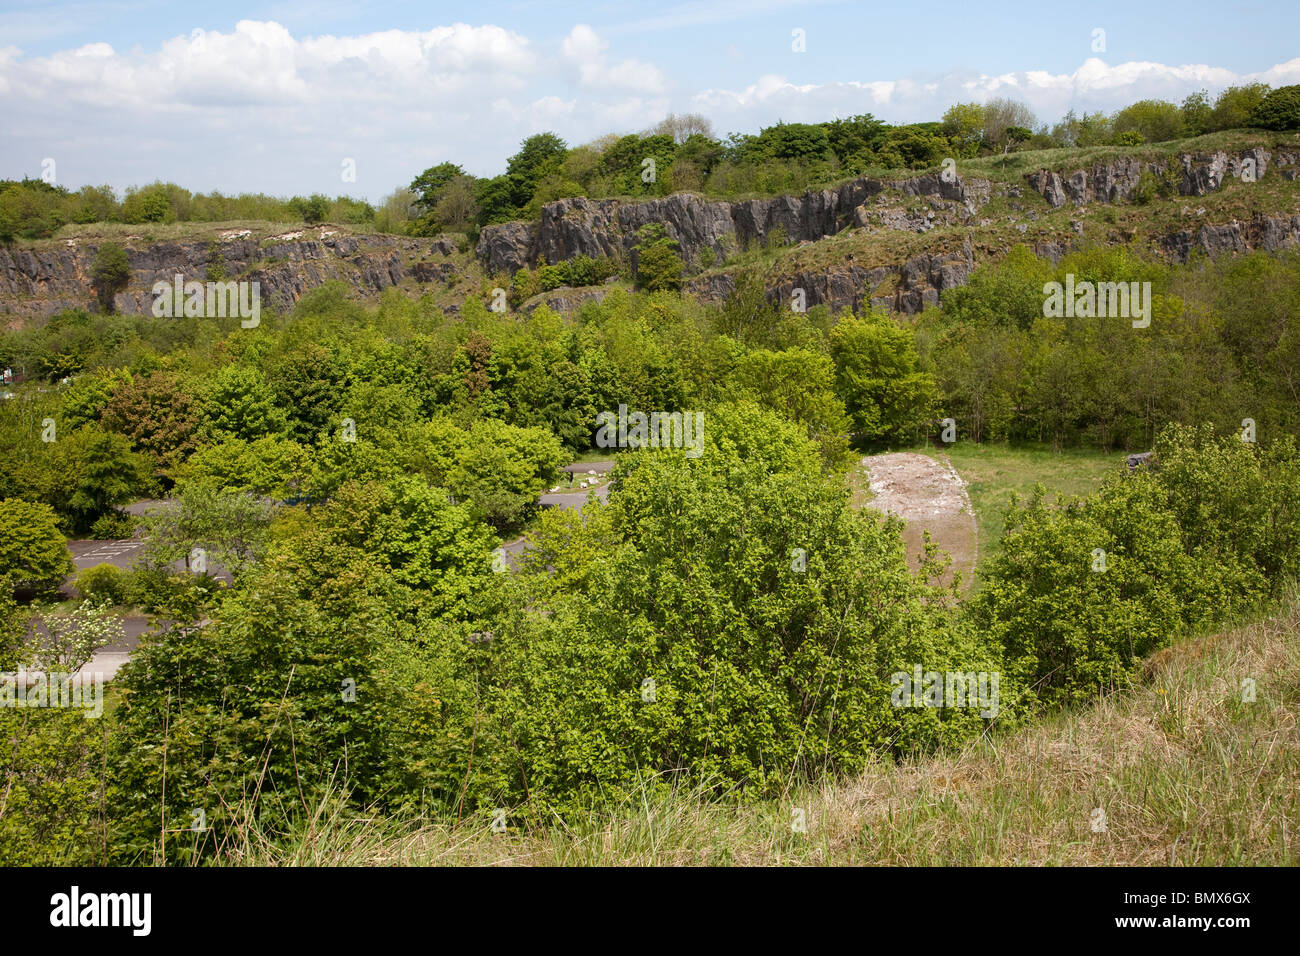 Disused and overgrown quarry in Buxton Country Park Buxton Derbyshire UK - Stock Image